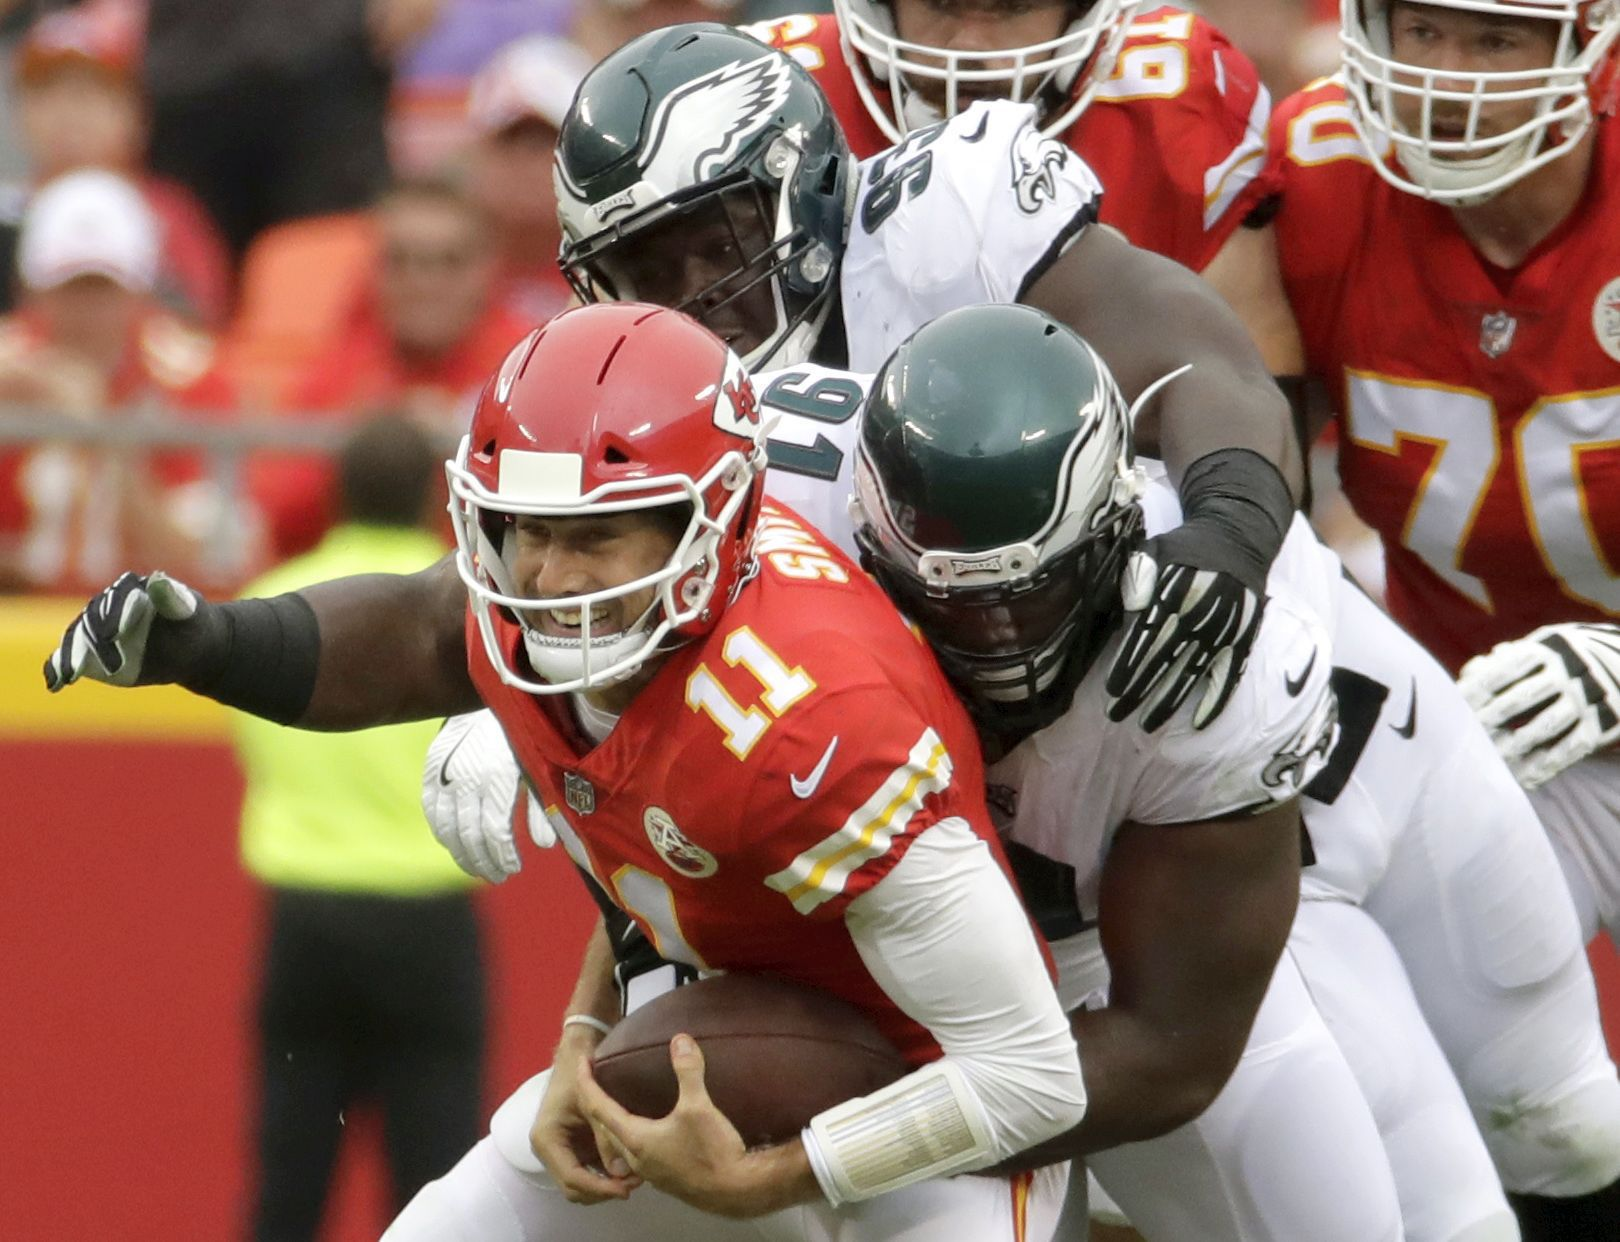 Darren Sproles' season over after dual injuries on same play